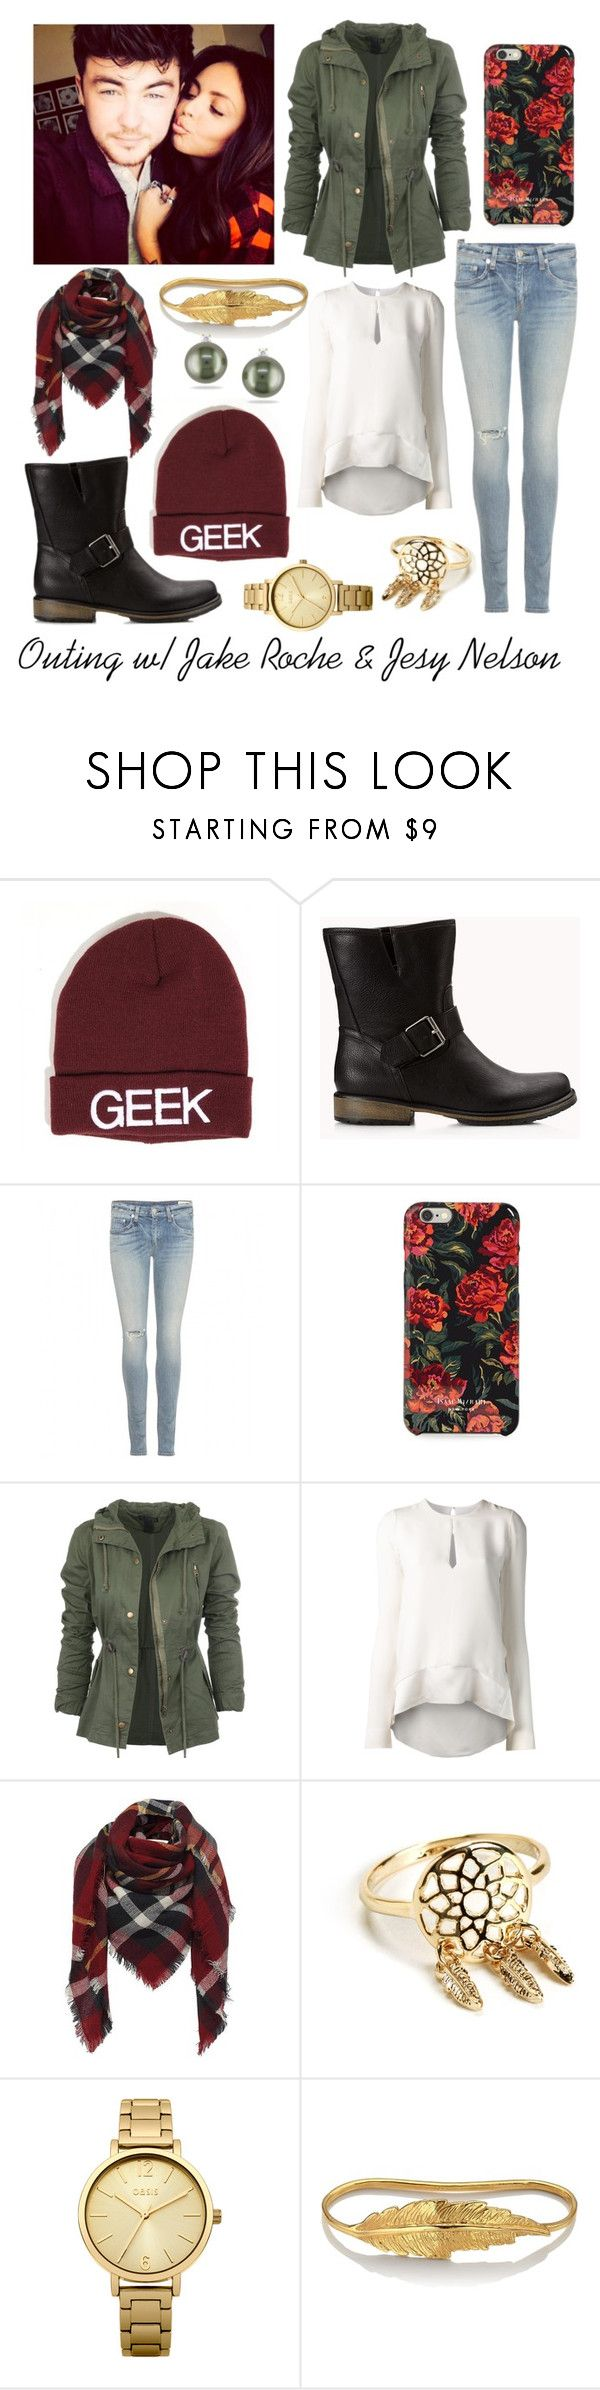 """""""Outing with Jake Roche & Jesy Nelson"""" by mamzeel-coralie ❤ liked on Polyvore featuring Forever 21, rag & bone, Isaac Mizrahi, Narciso Rodriguez, Oasis, LeiVanKash, Miadora, littlemix, JesyNelson and RIXTON"""